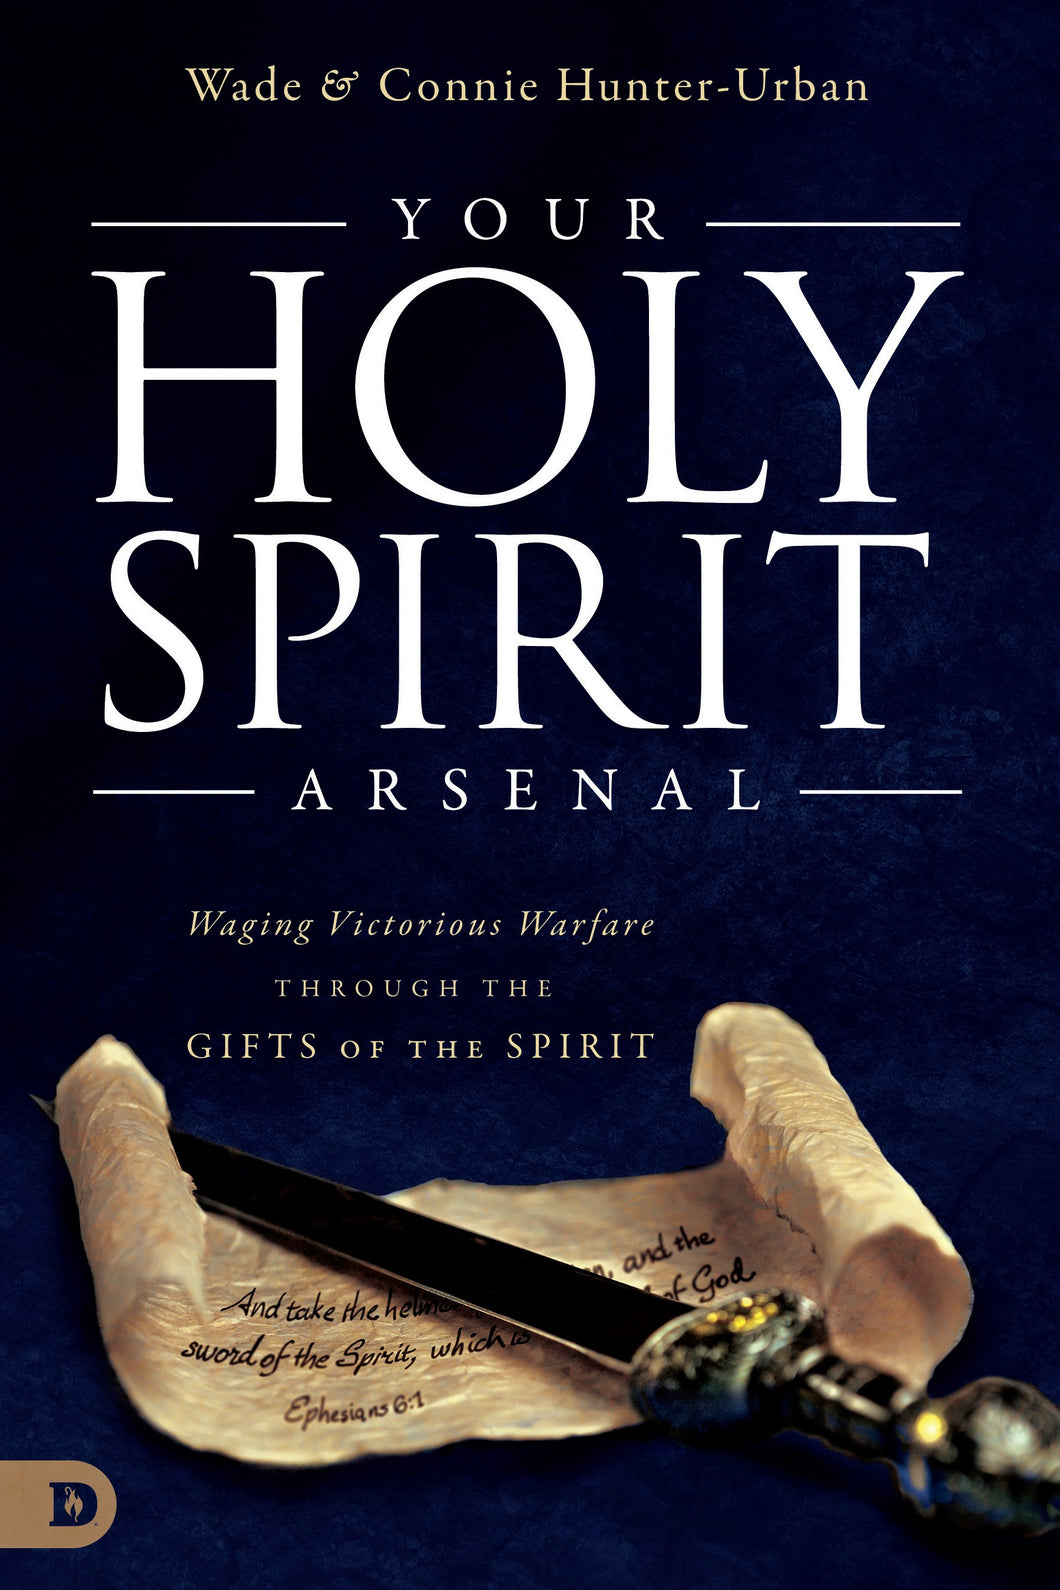 Your Holy Spirit Arsenal